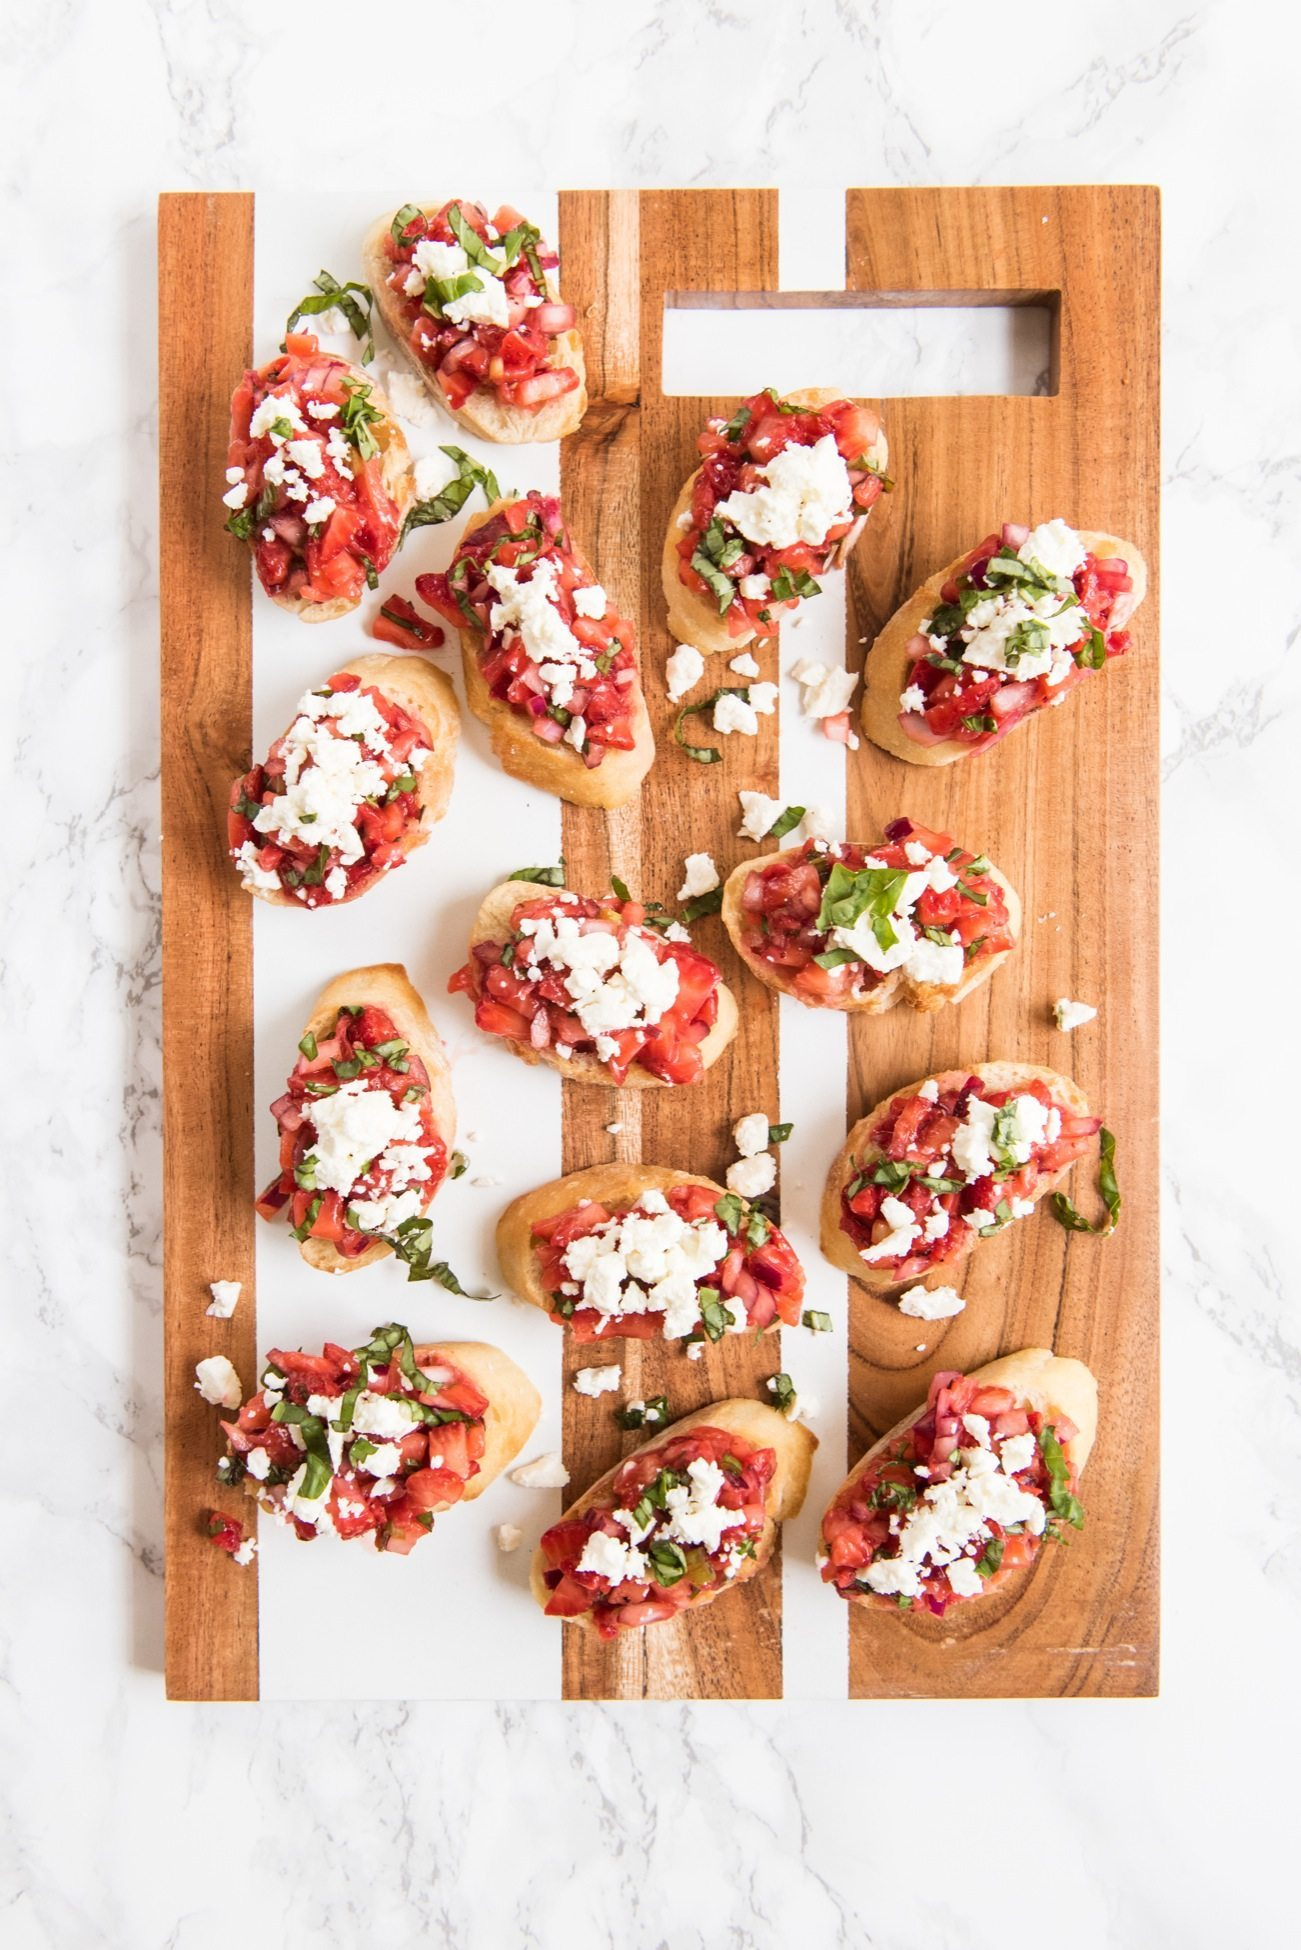 Strawberry Feta Bruschetta Recipe | Entertaining ideas, party appetizers, cocktail recipes, party ideas and more from @cydconverse